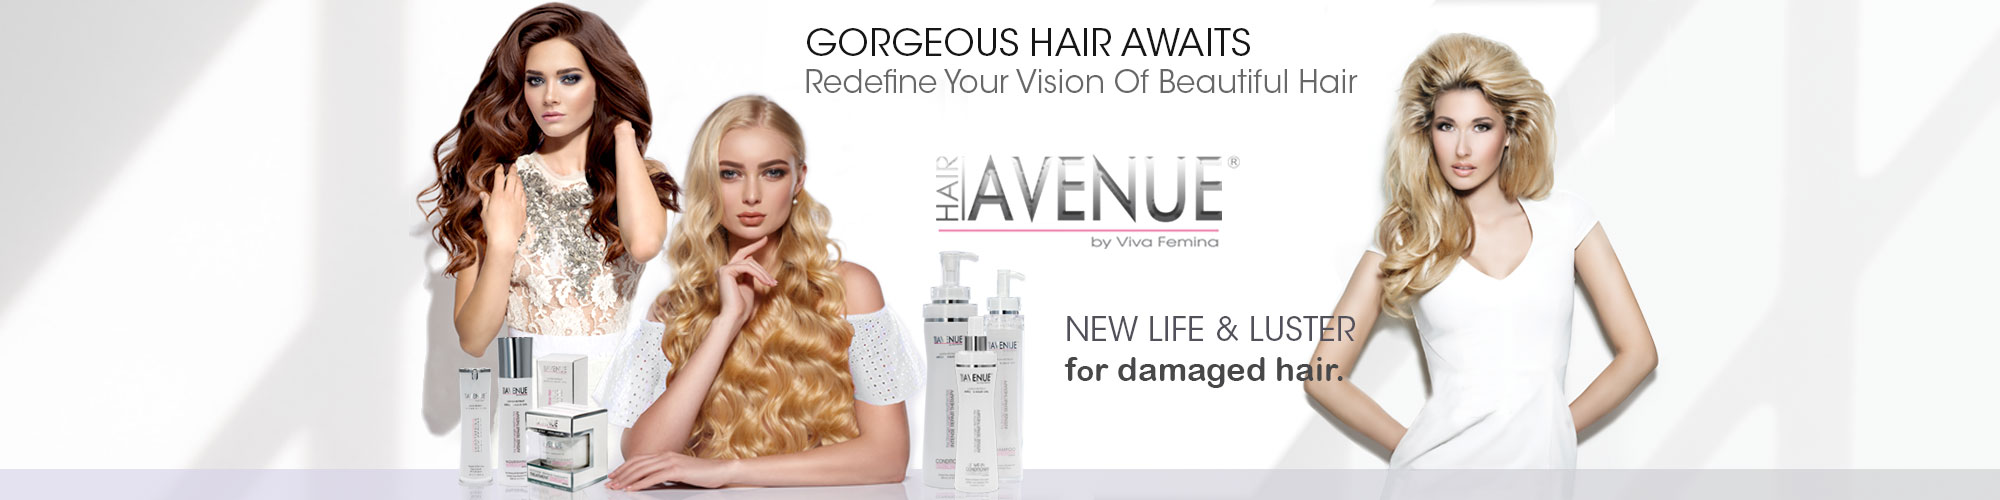 Hair-avenue-banner-WITH-SHADDOW-.jpg